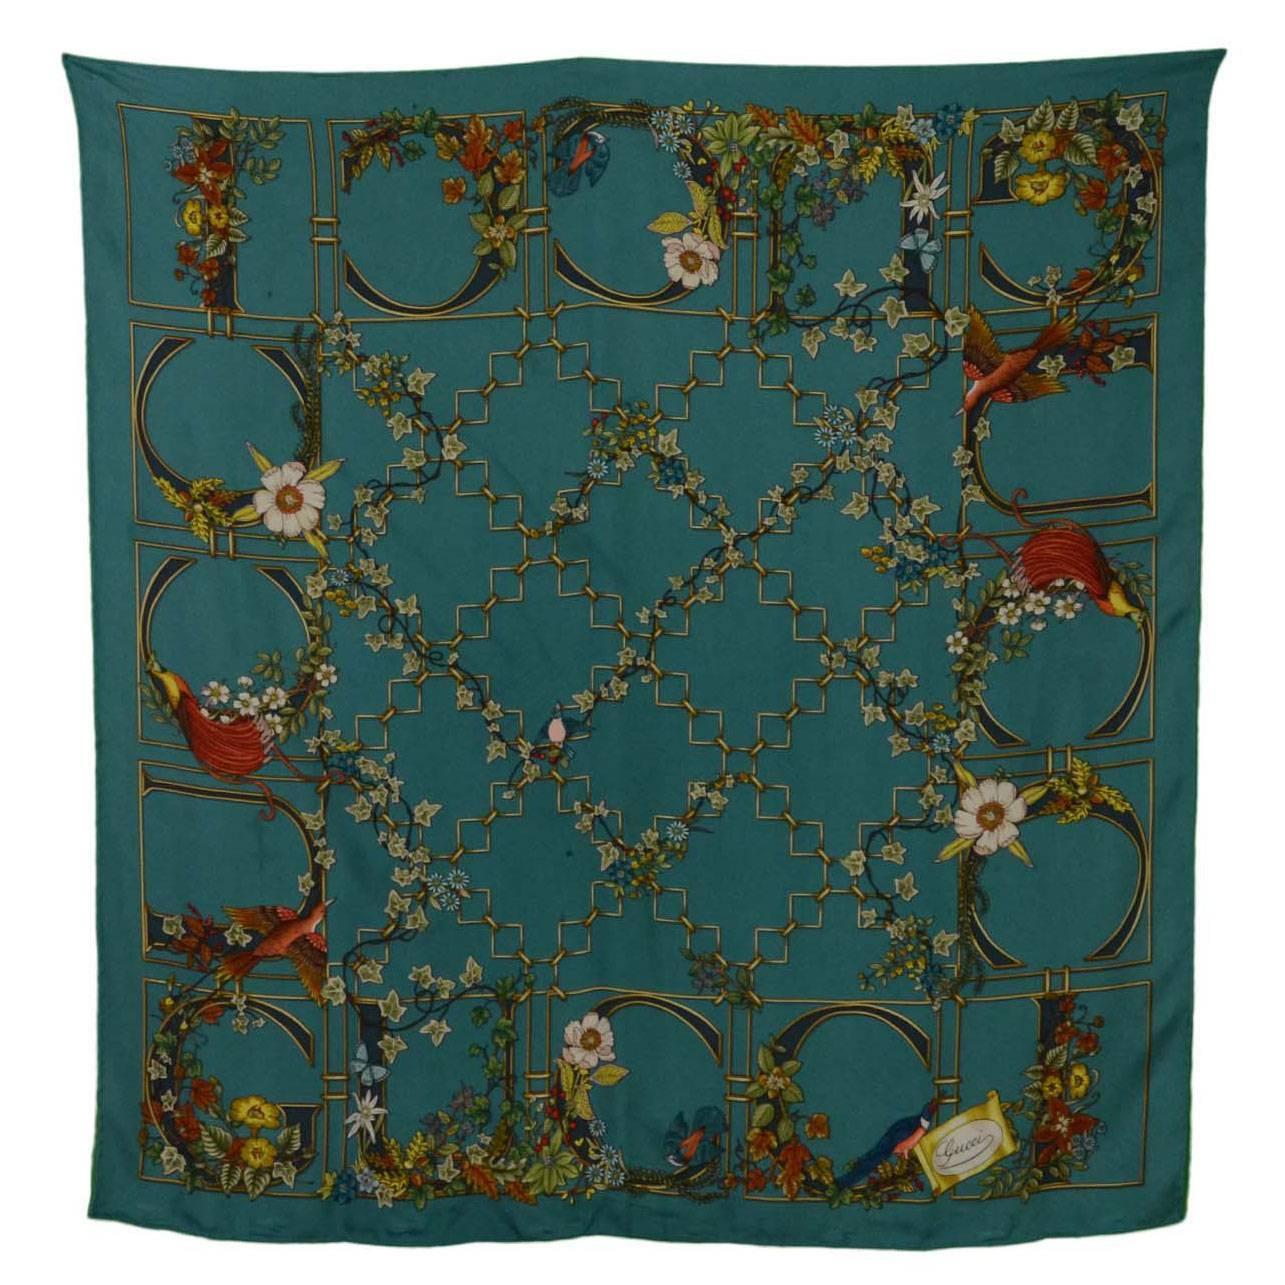 Black Flower 21st Century Op Art Set: Gucci Turquoise Ivy And Floral Print 90cm Silk Scarf At